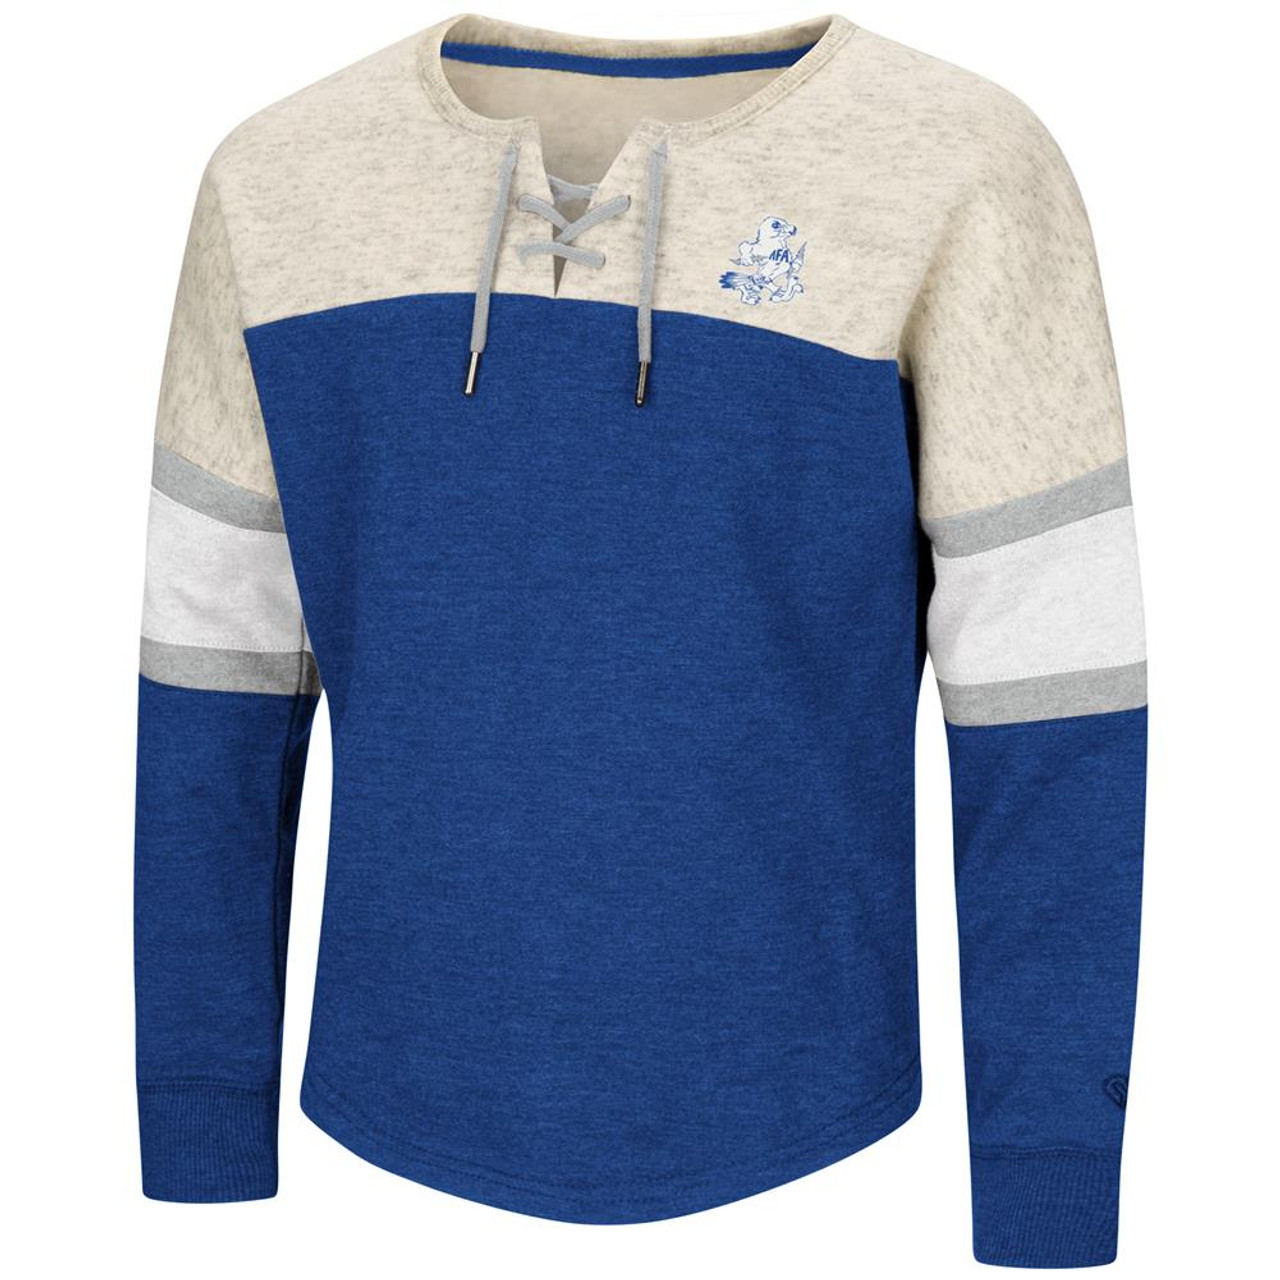 Air Force Academy Falcons Girls Sweatshirt Oversized Pullover